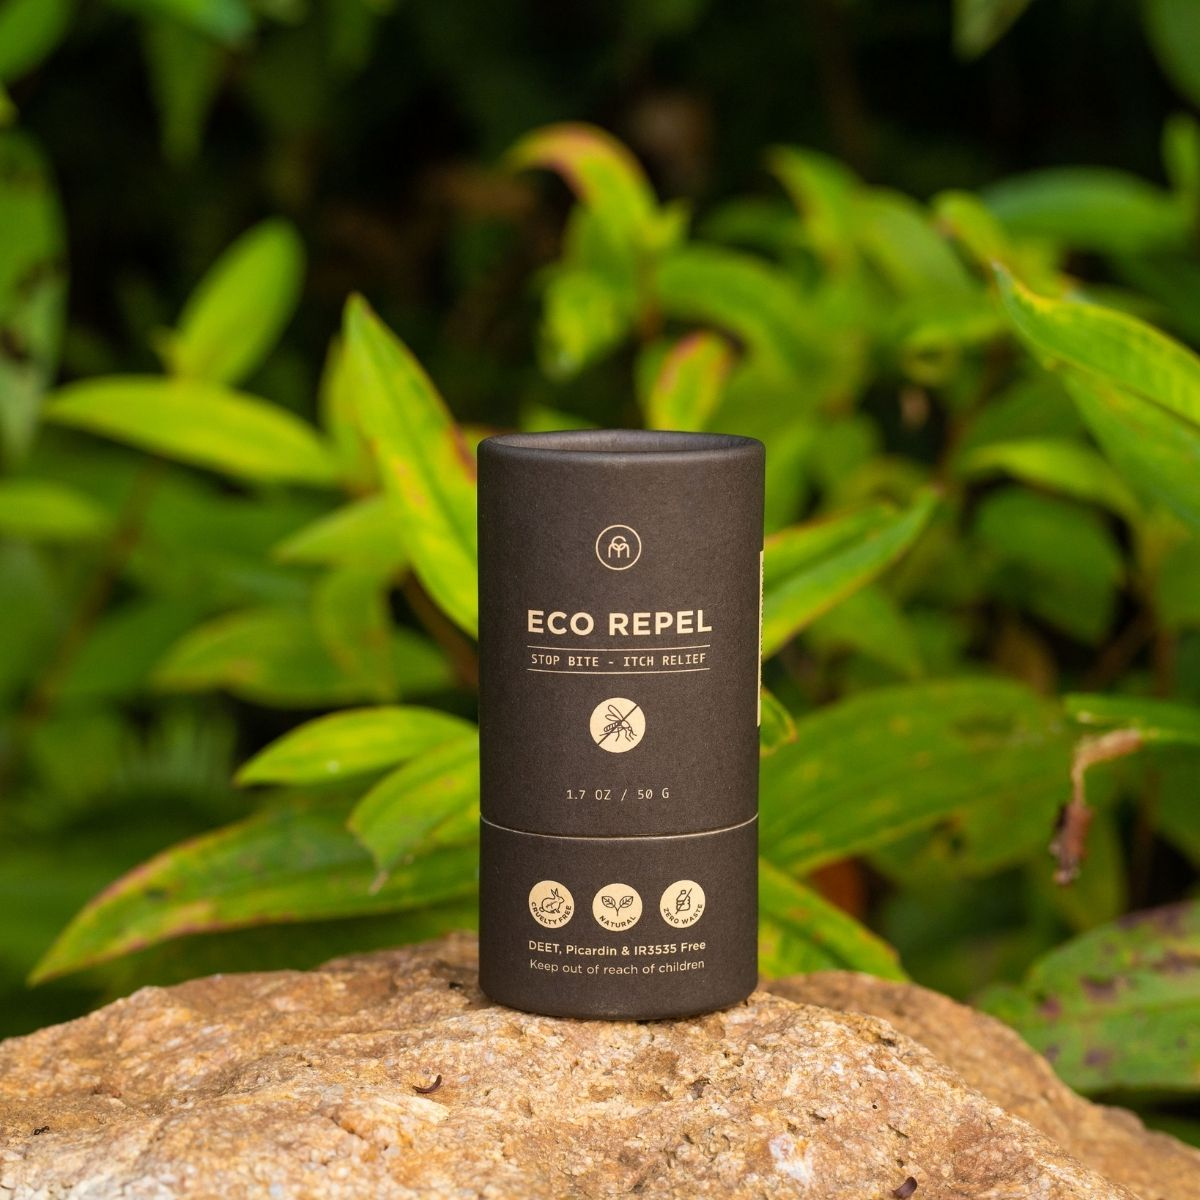 ECOrepel | DEET-FREE INSECT REPELLENT AND AFTER BITE RELIEF